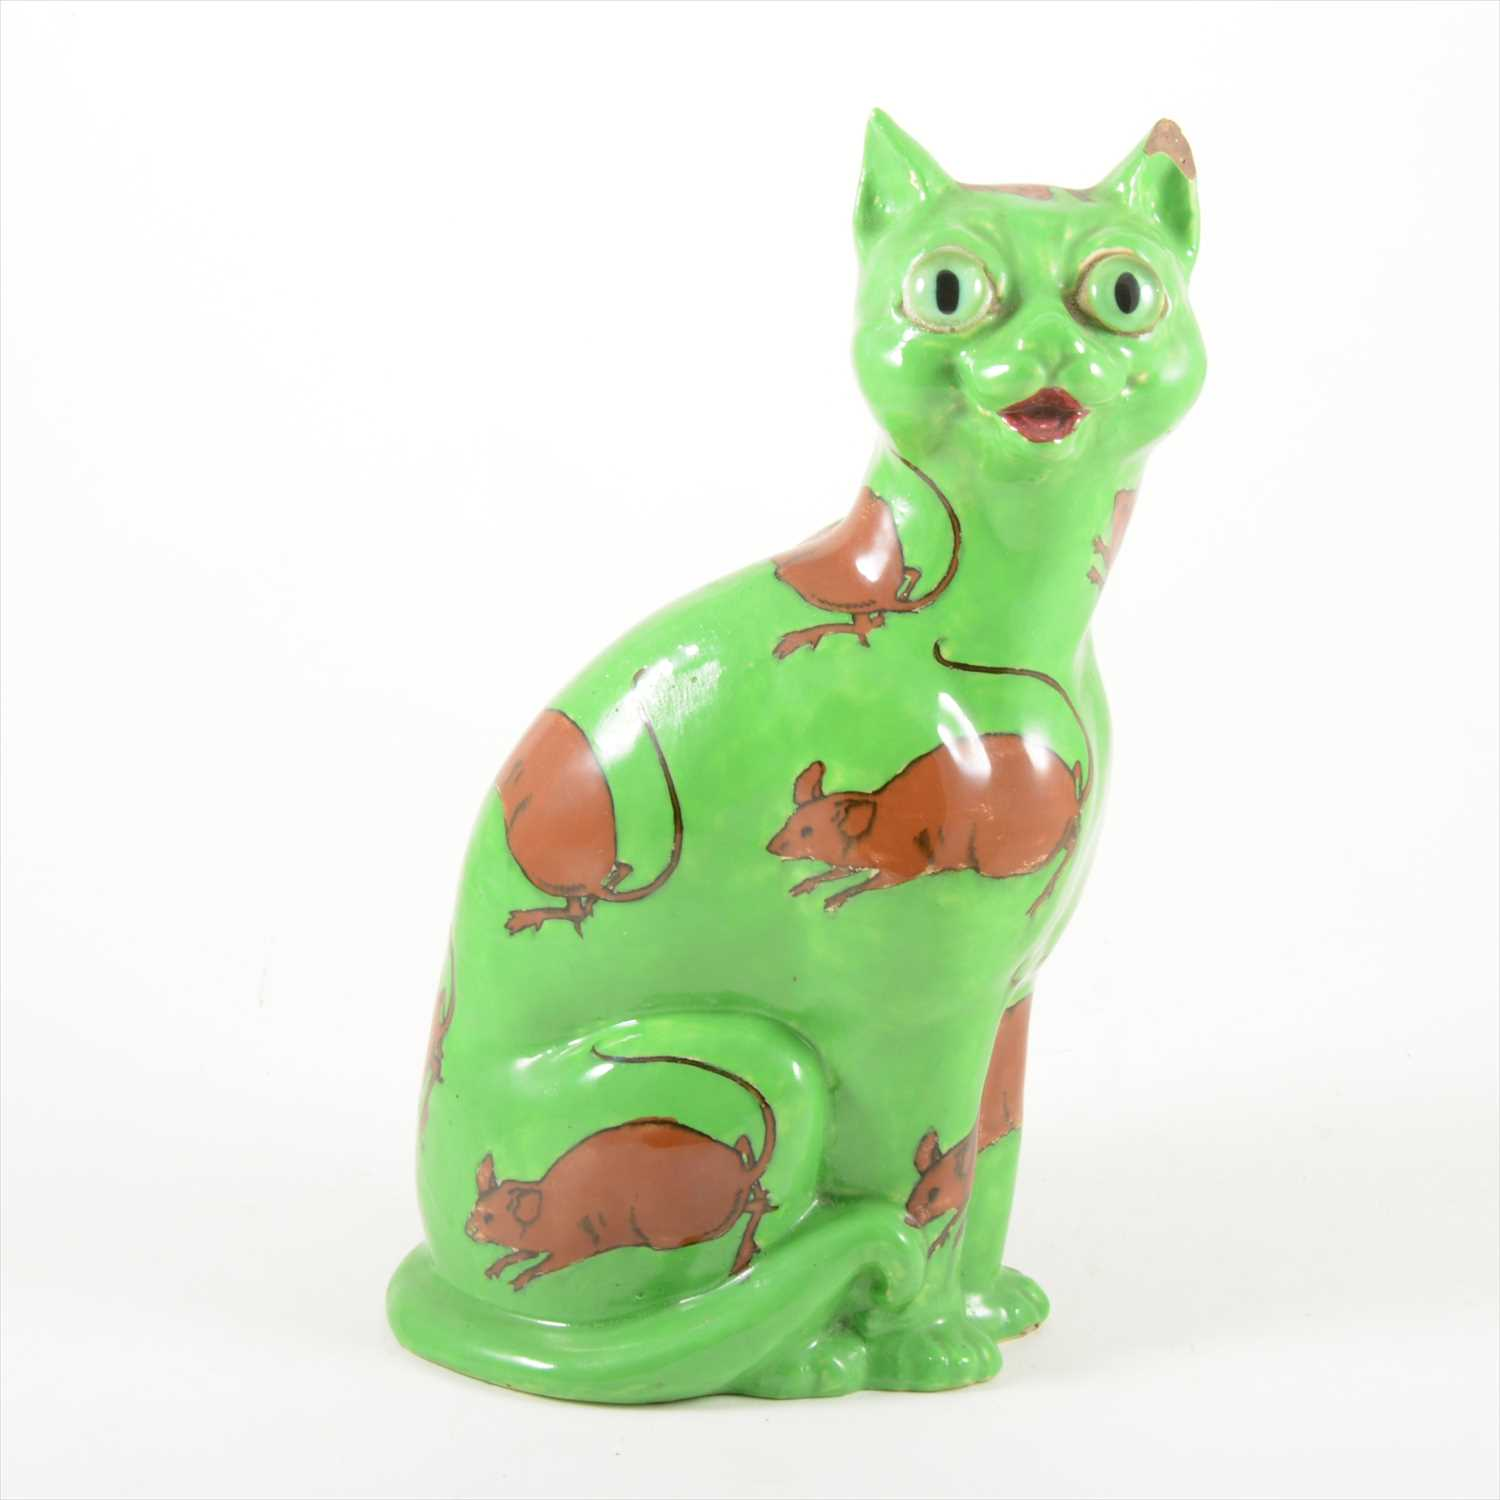 152A - A rare Foley 'Intarsio Ware' model of a Cat, attributed to Frederick Rhead for Wileman & Co. circa 1900